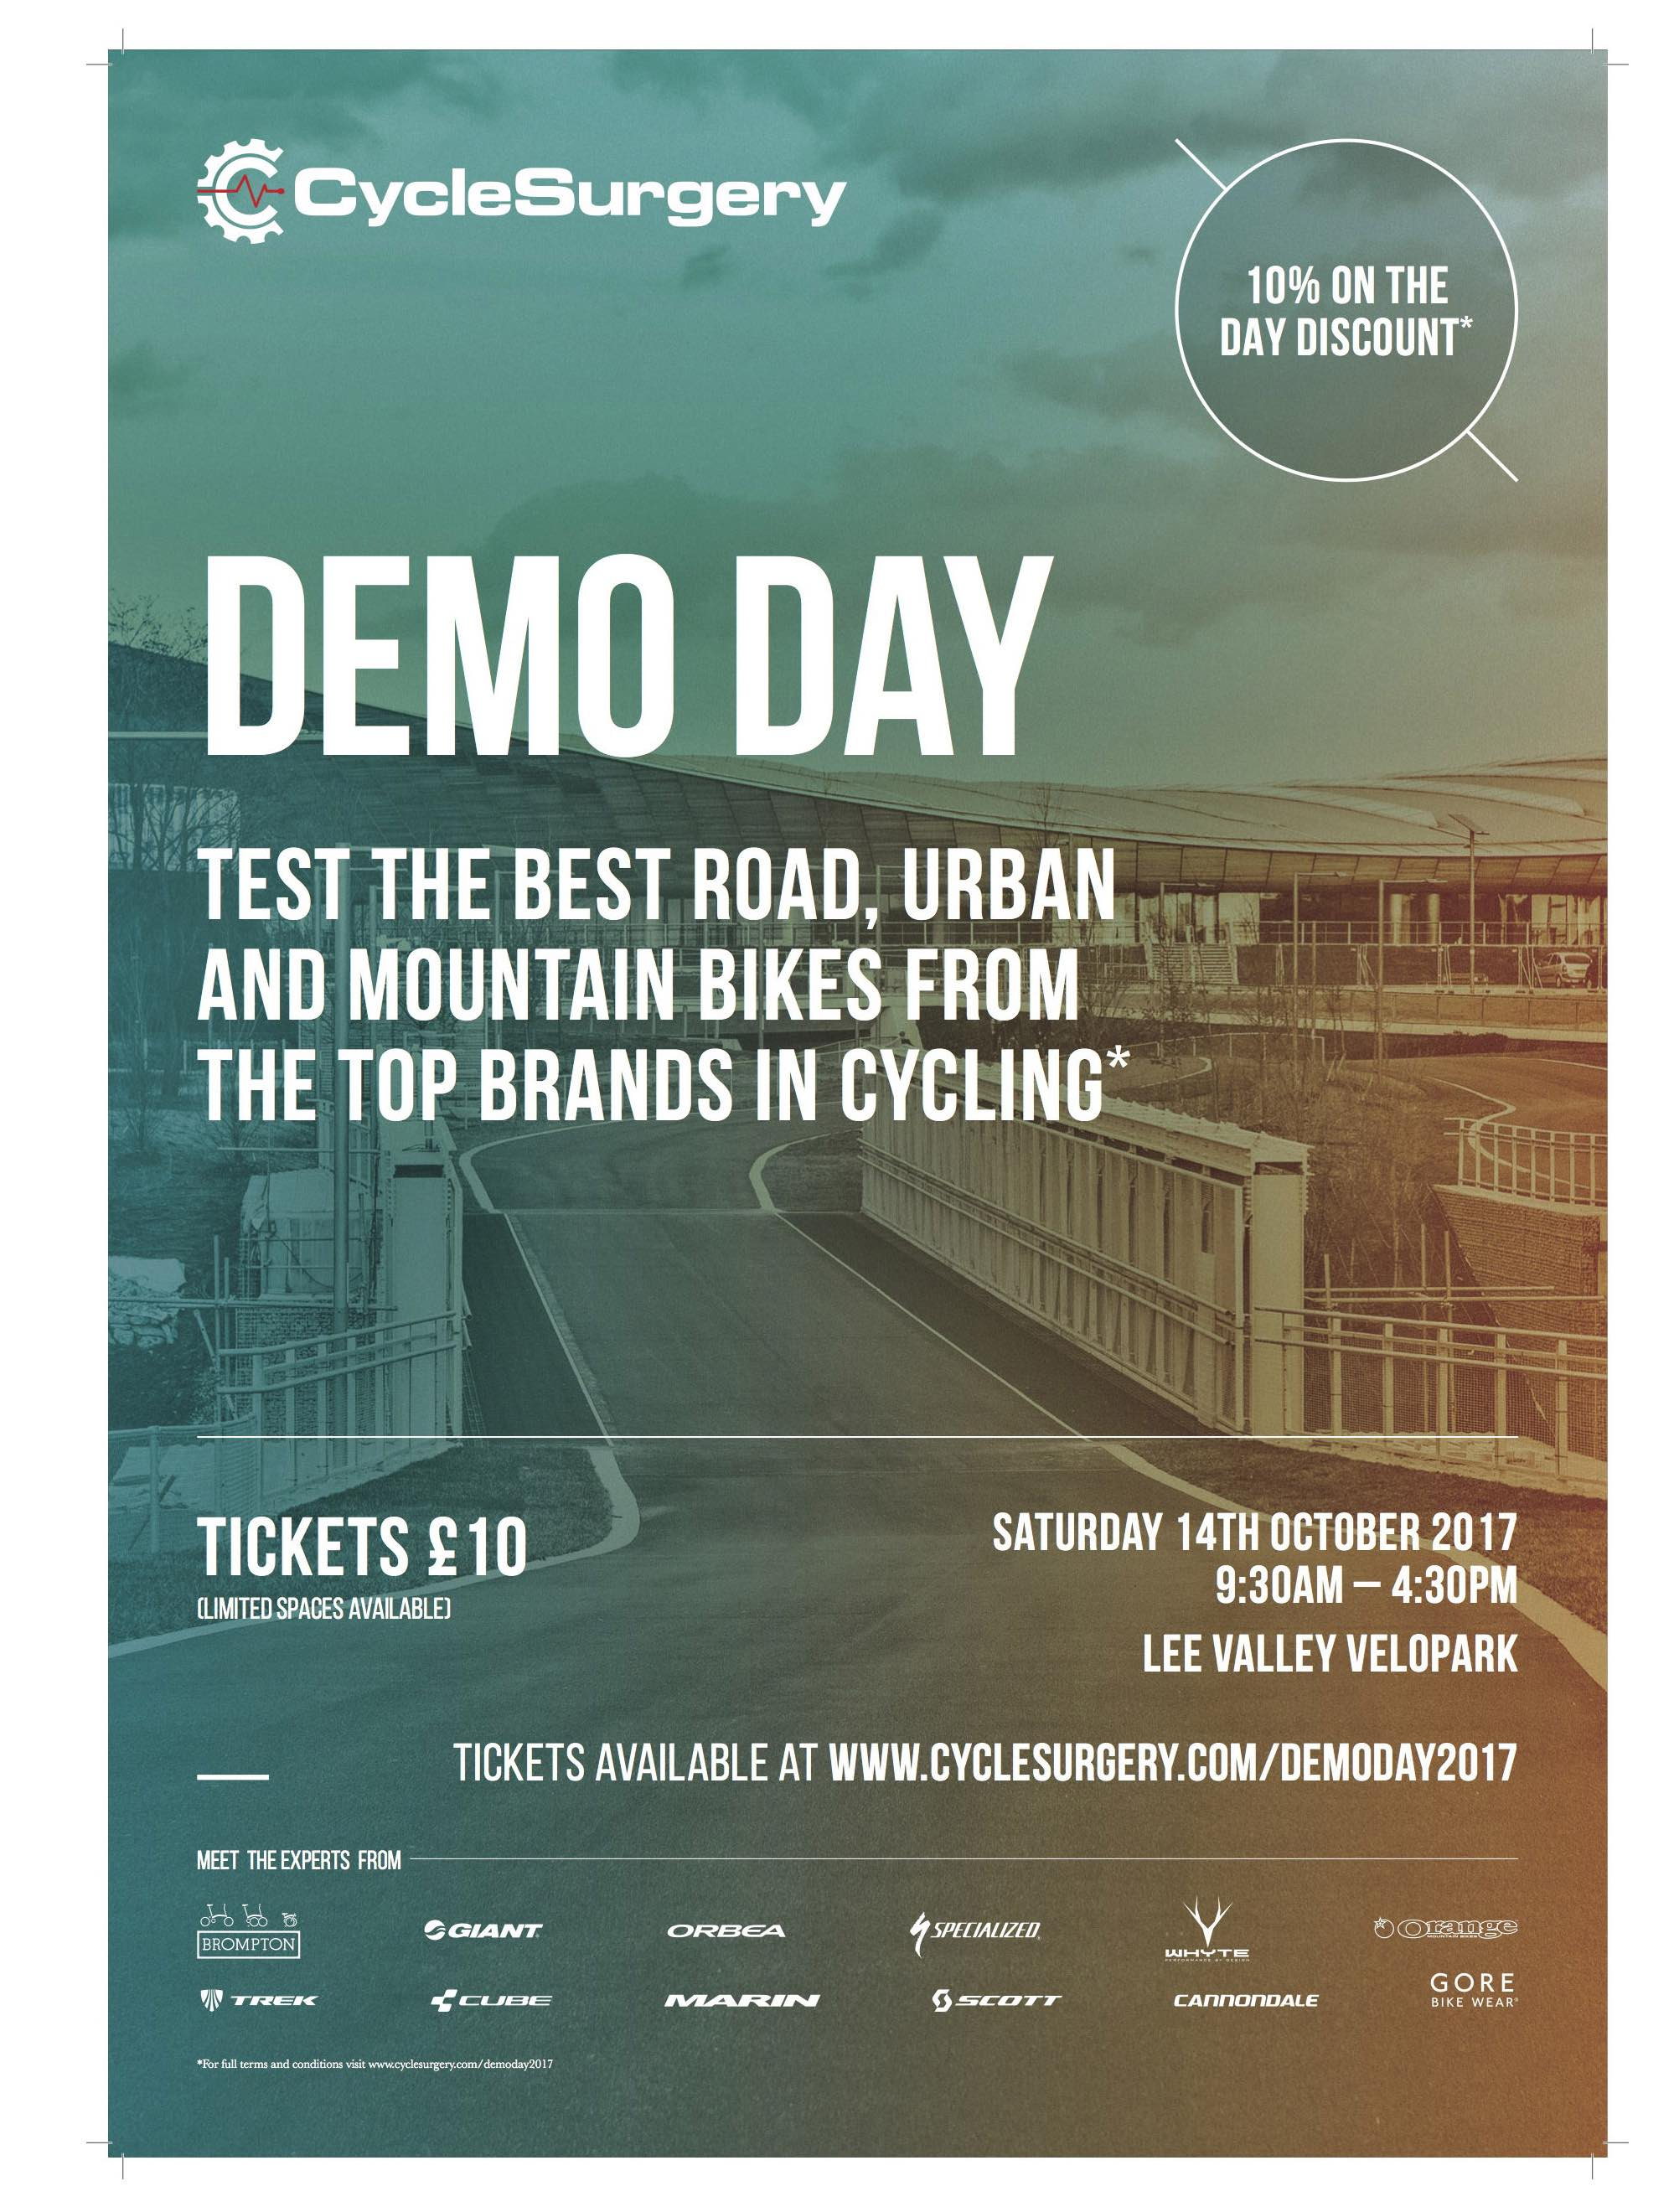 Cycle Surgery's Demo Day